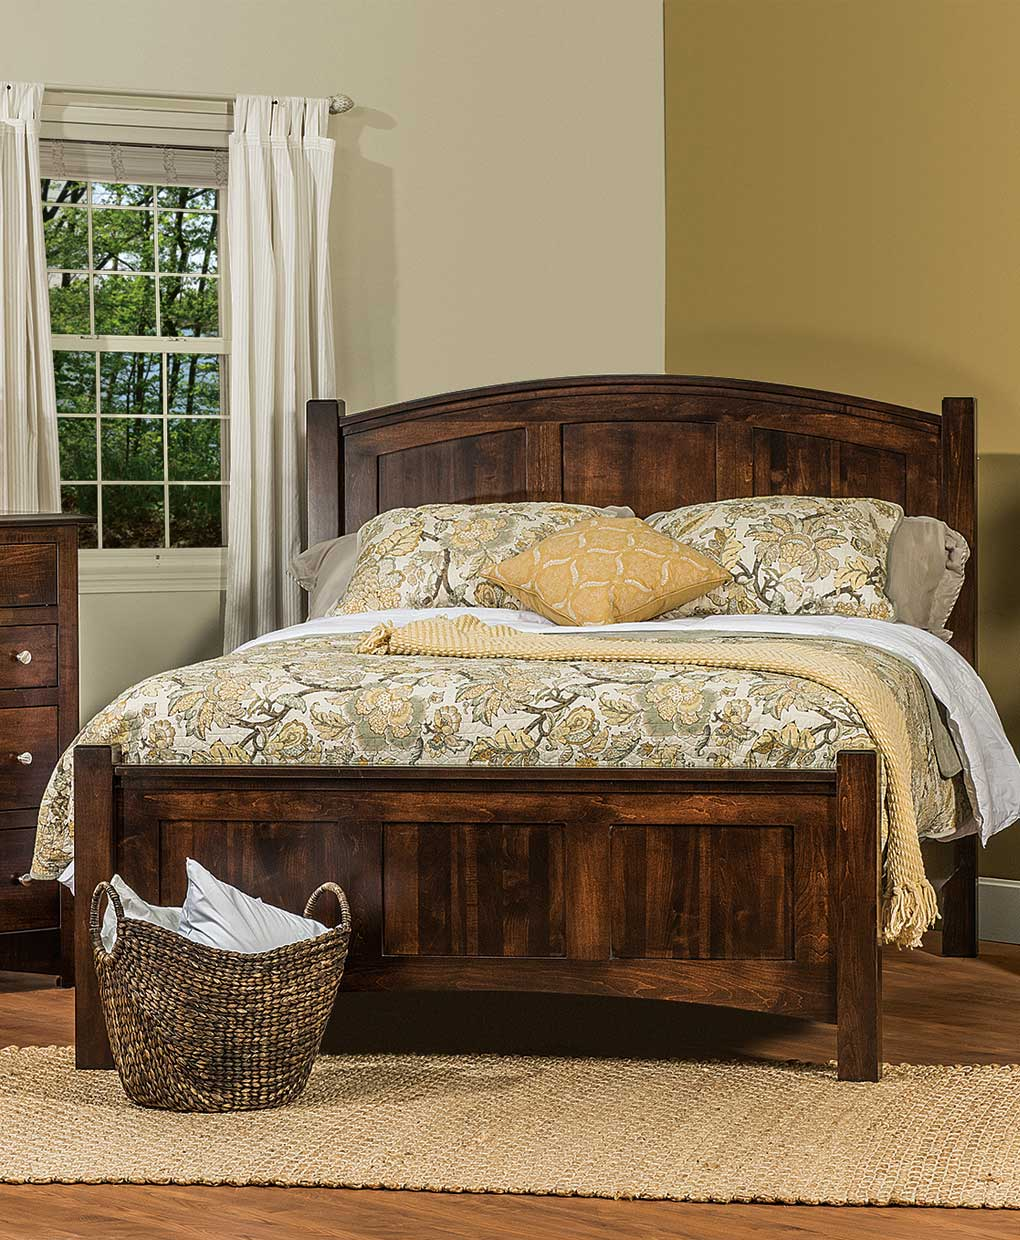 Finland Bed Amish Direct Furniture